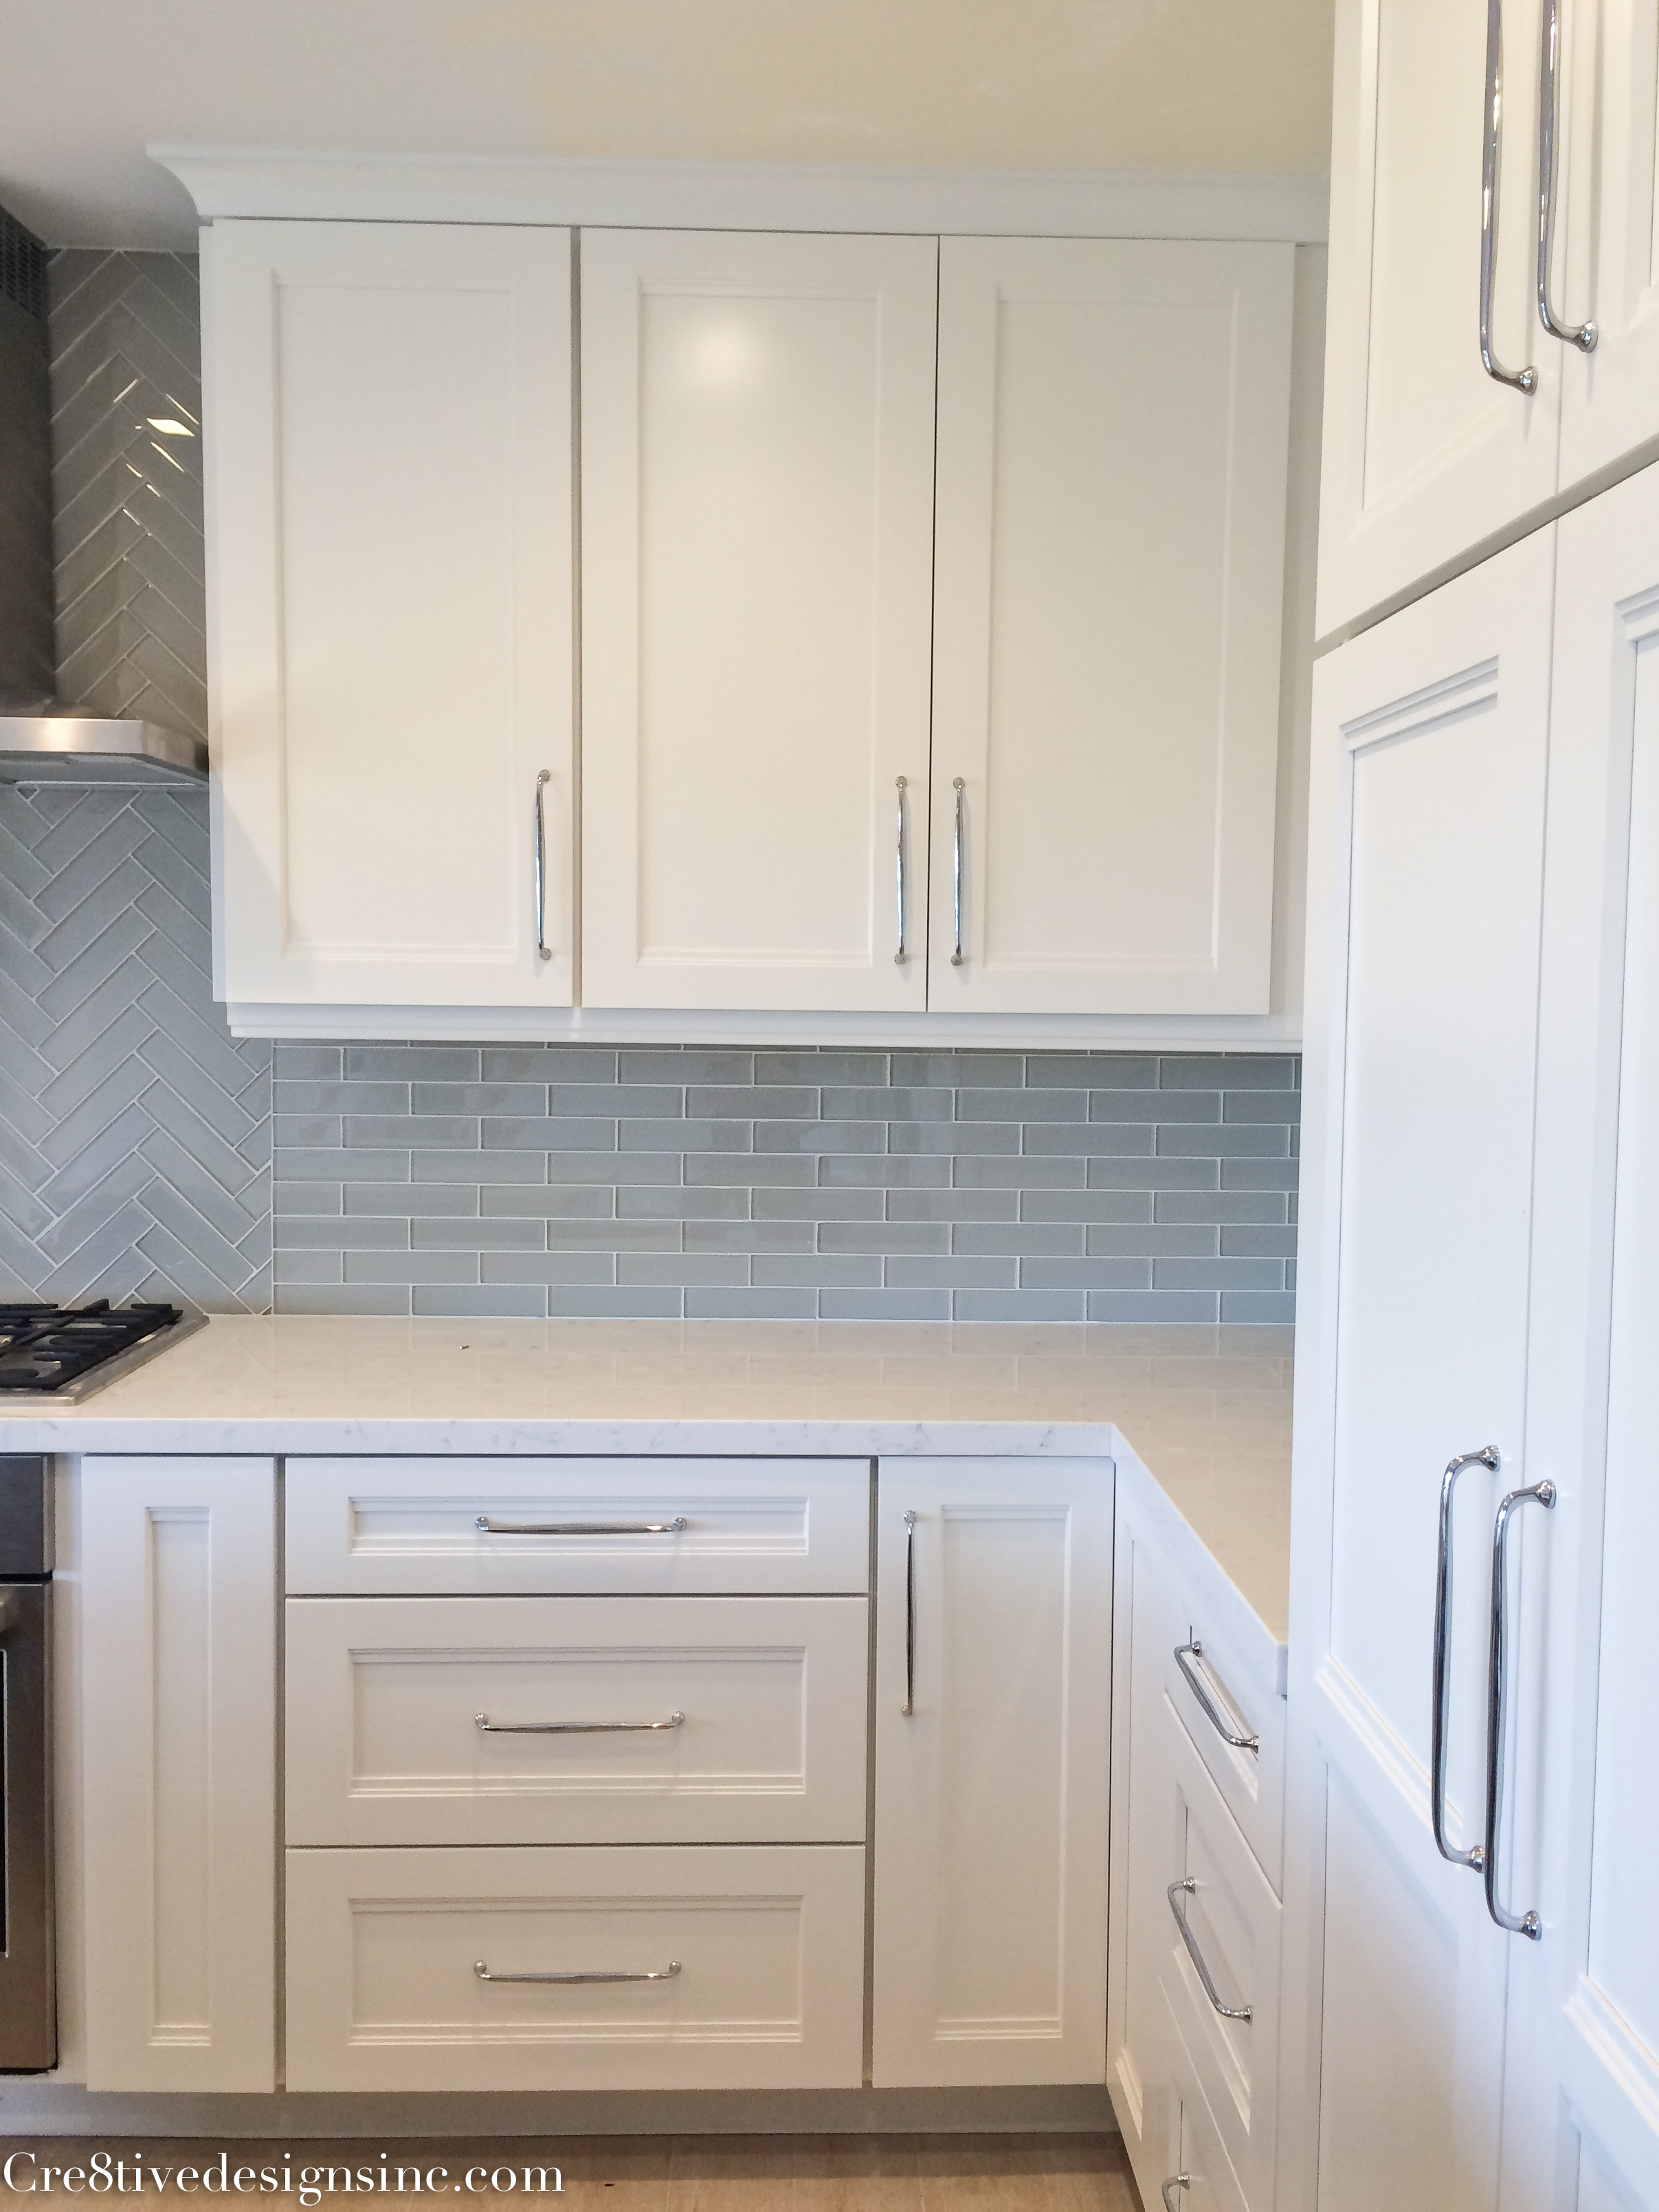 Kitchen remodel using lowes cabinets cre8tive designs inc for Kitchen cabinet hardware